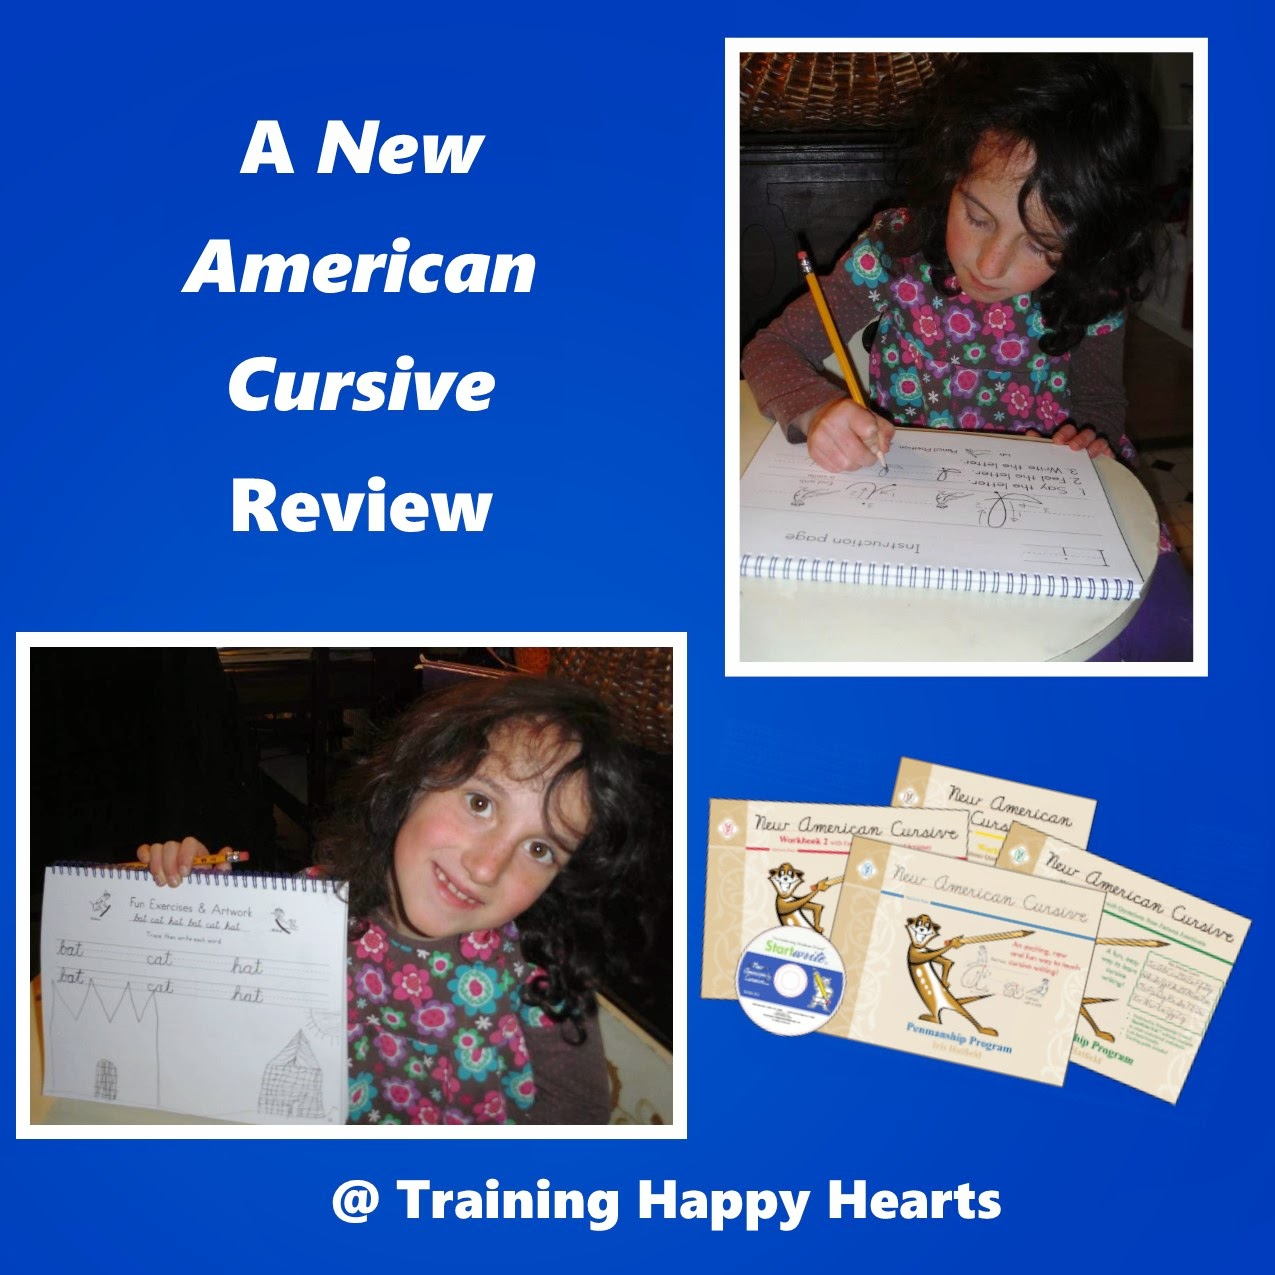 http://traininghappyhearts.blogspot.com/2015/04/learn-cursive-early-easy-way-review.html